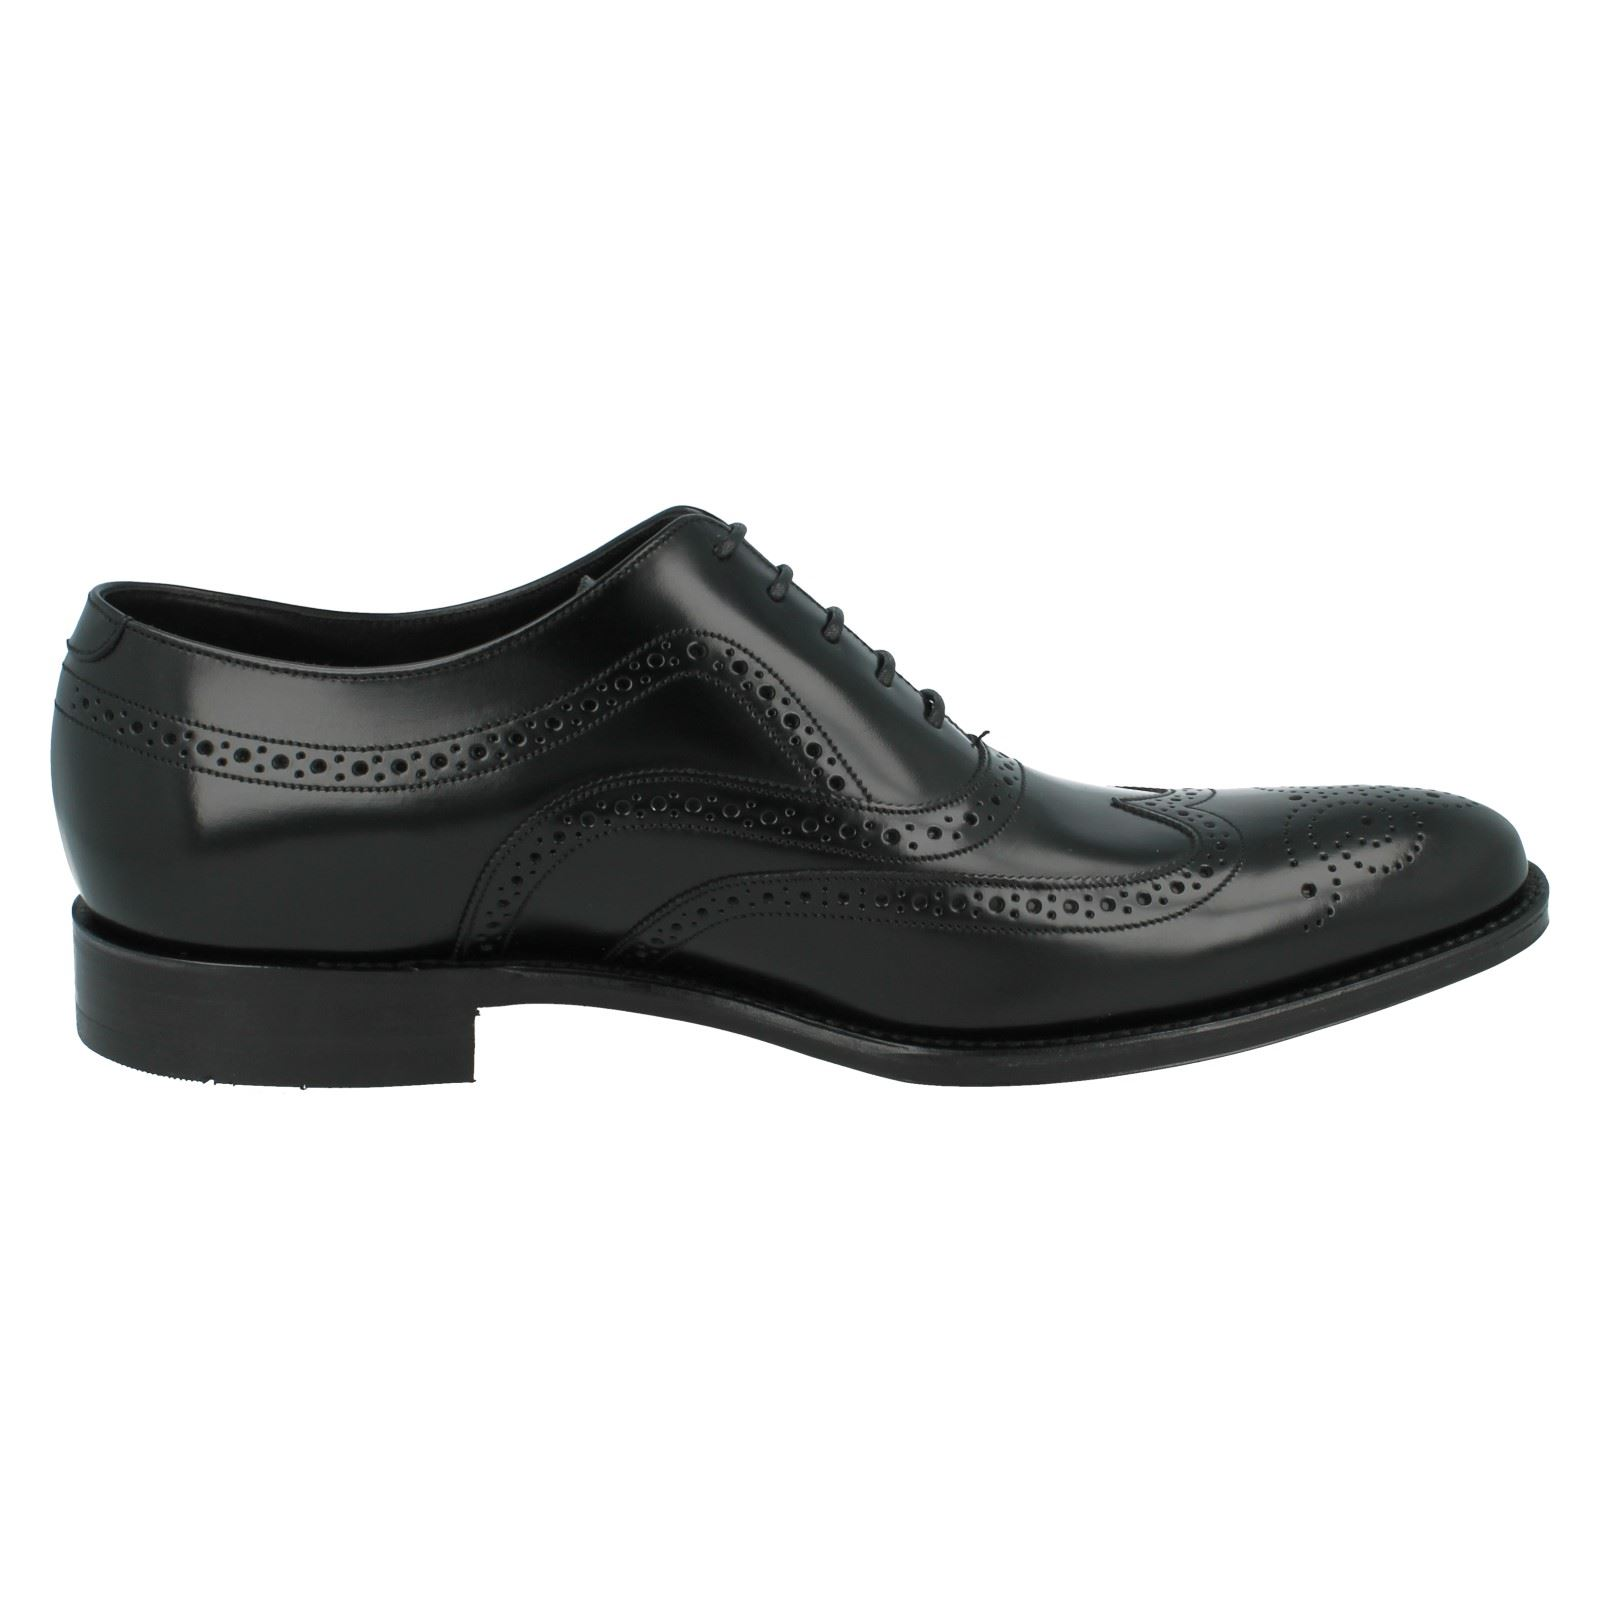 Mens Loake Formal Leather - F Fitting Shoes the Style - Leather Jones b73baf